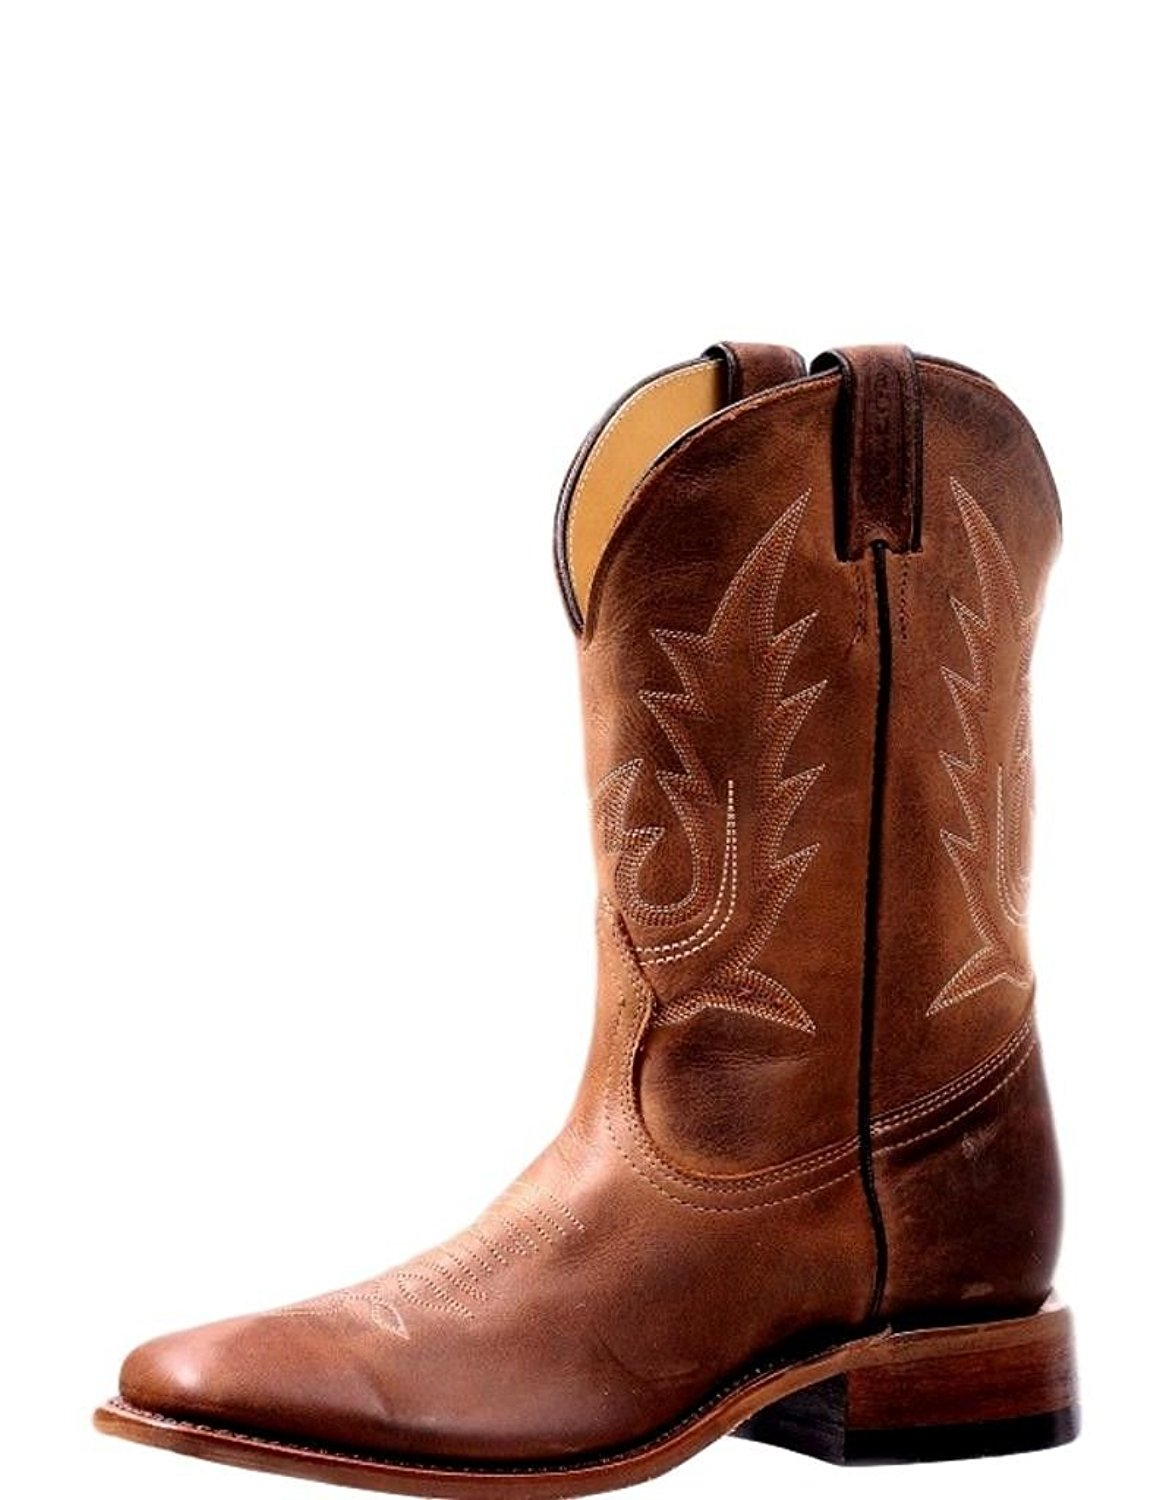 8c72e6a6214 Cheap Boulet Boots Canada, find Boulet Boots Canada deals on line at ...